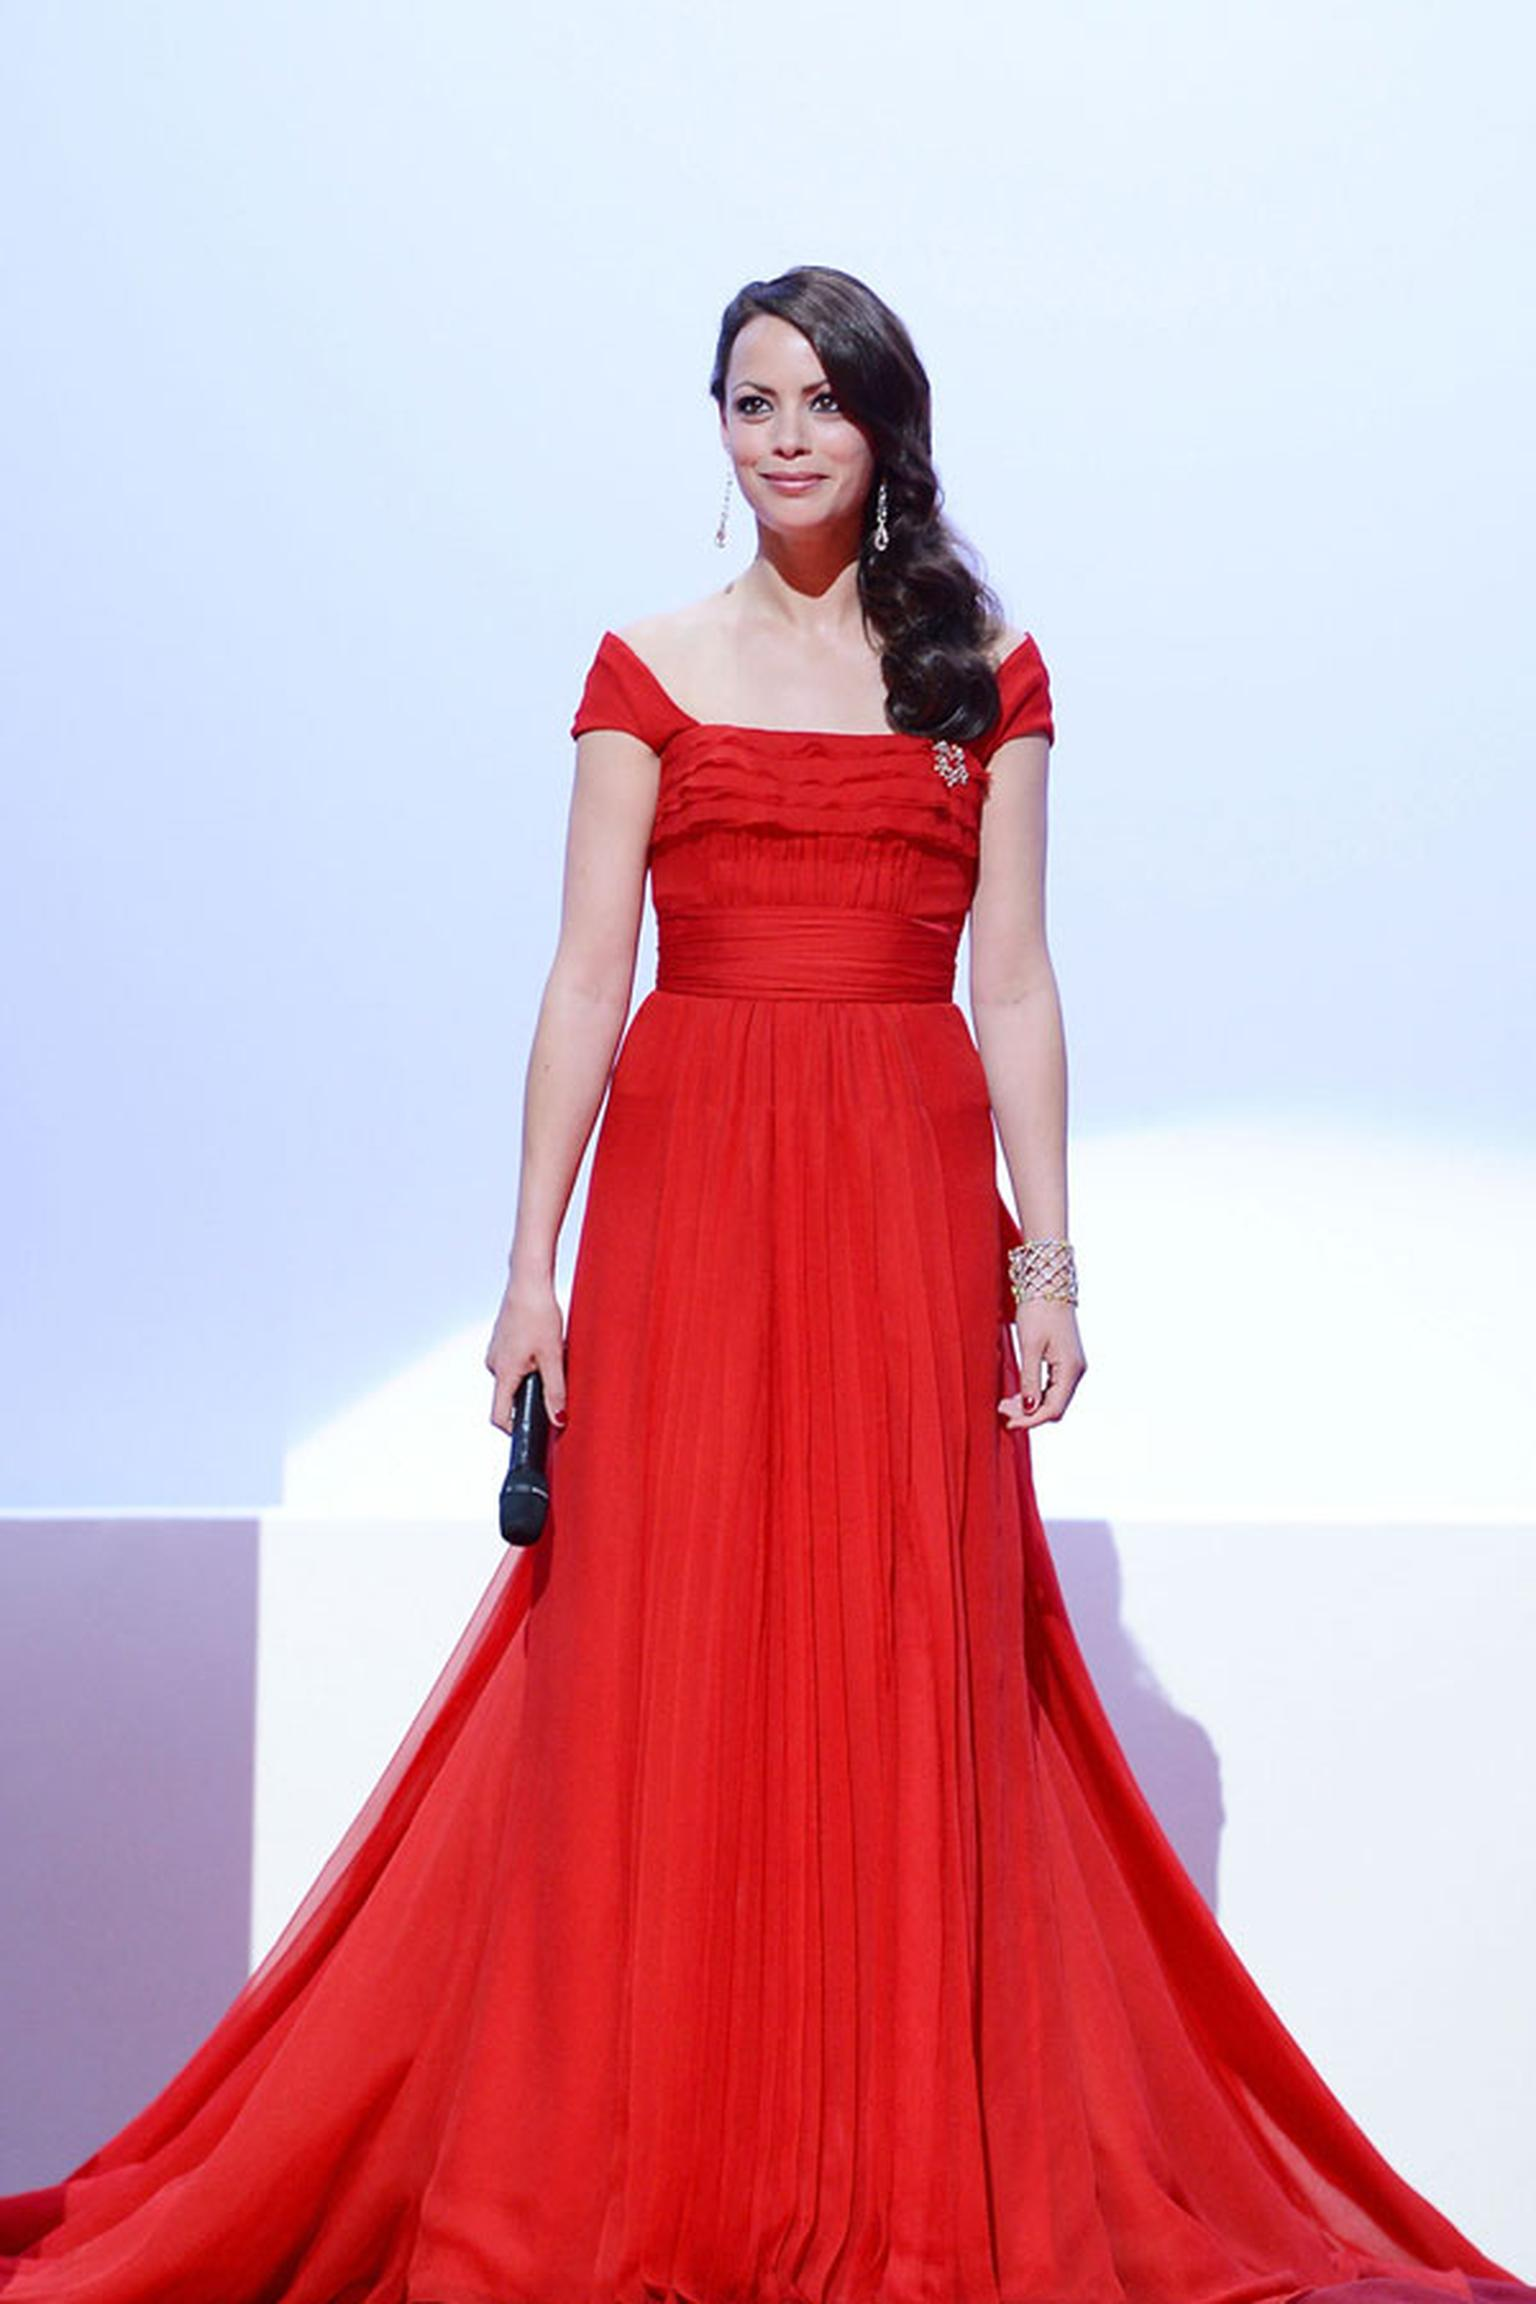 Berenice_Bejo_Louis-Vuitton_dress_and-Chopard_Jewellery